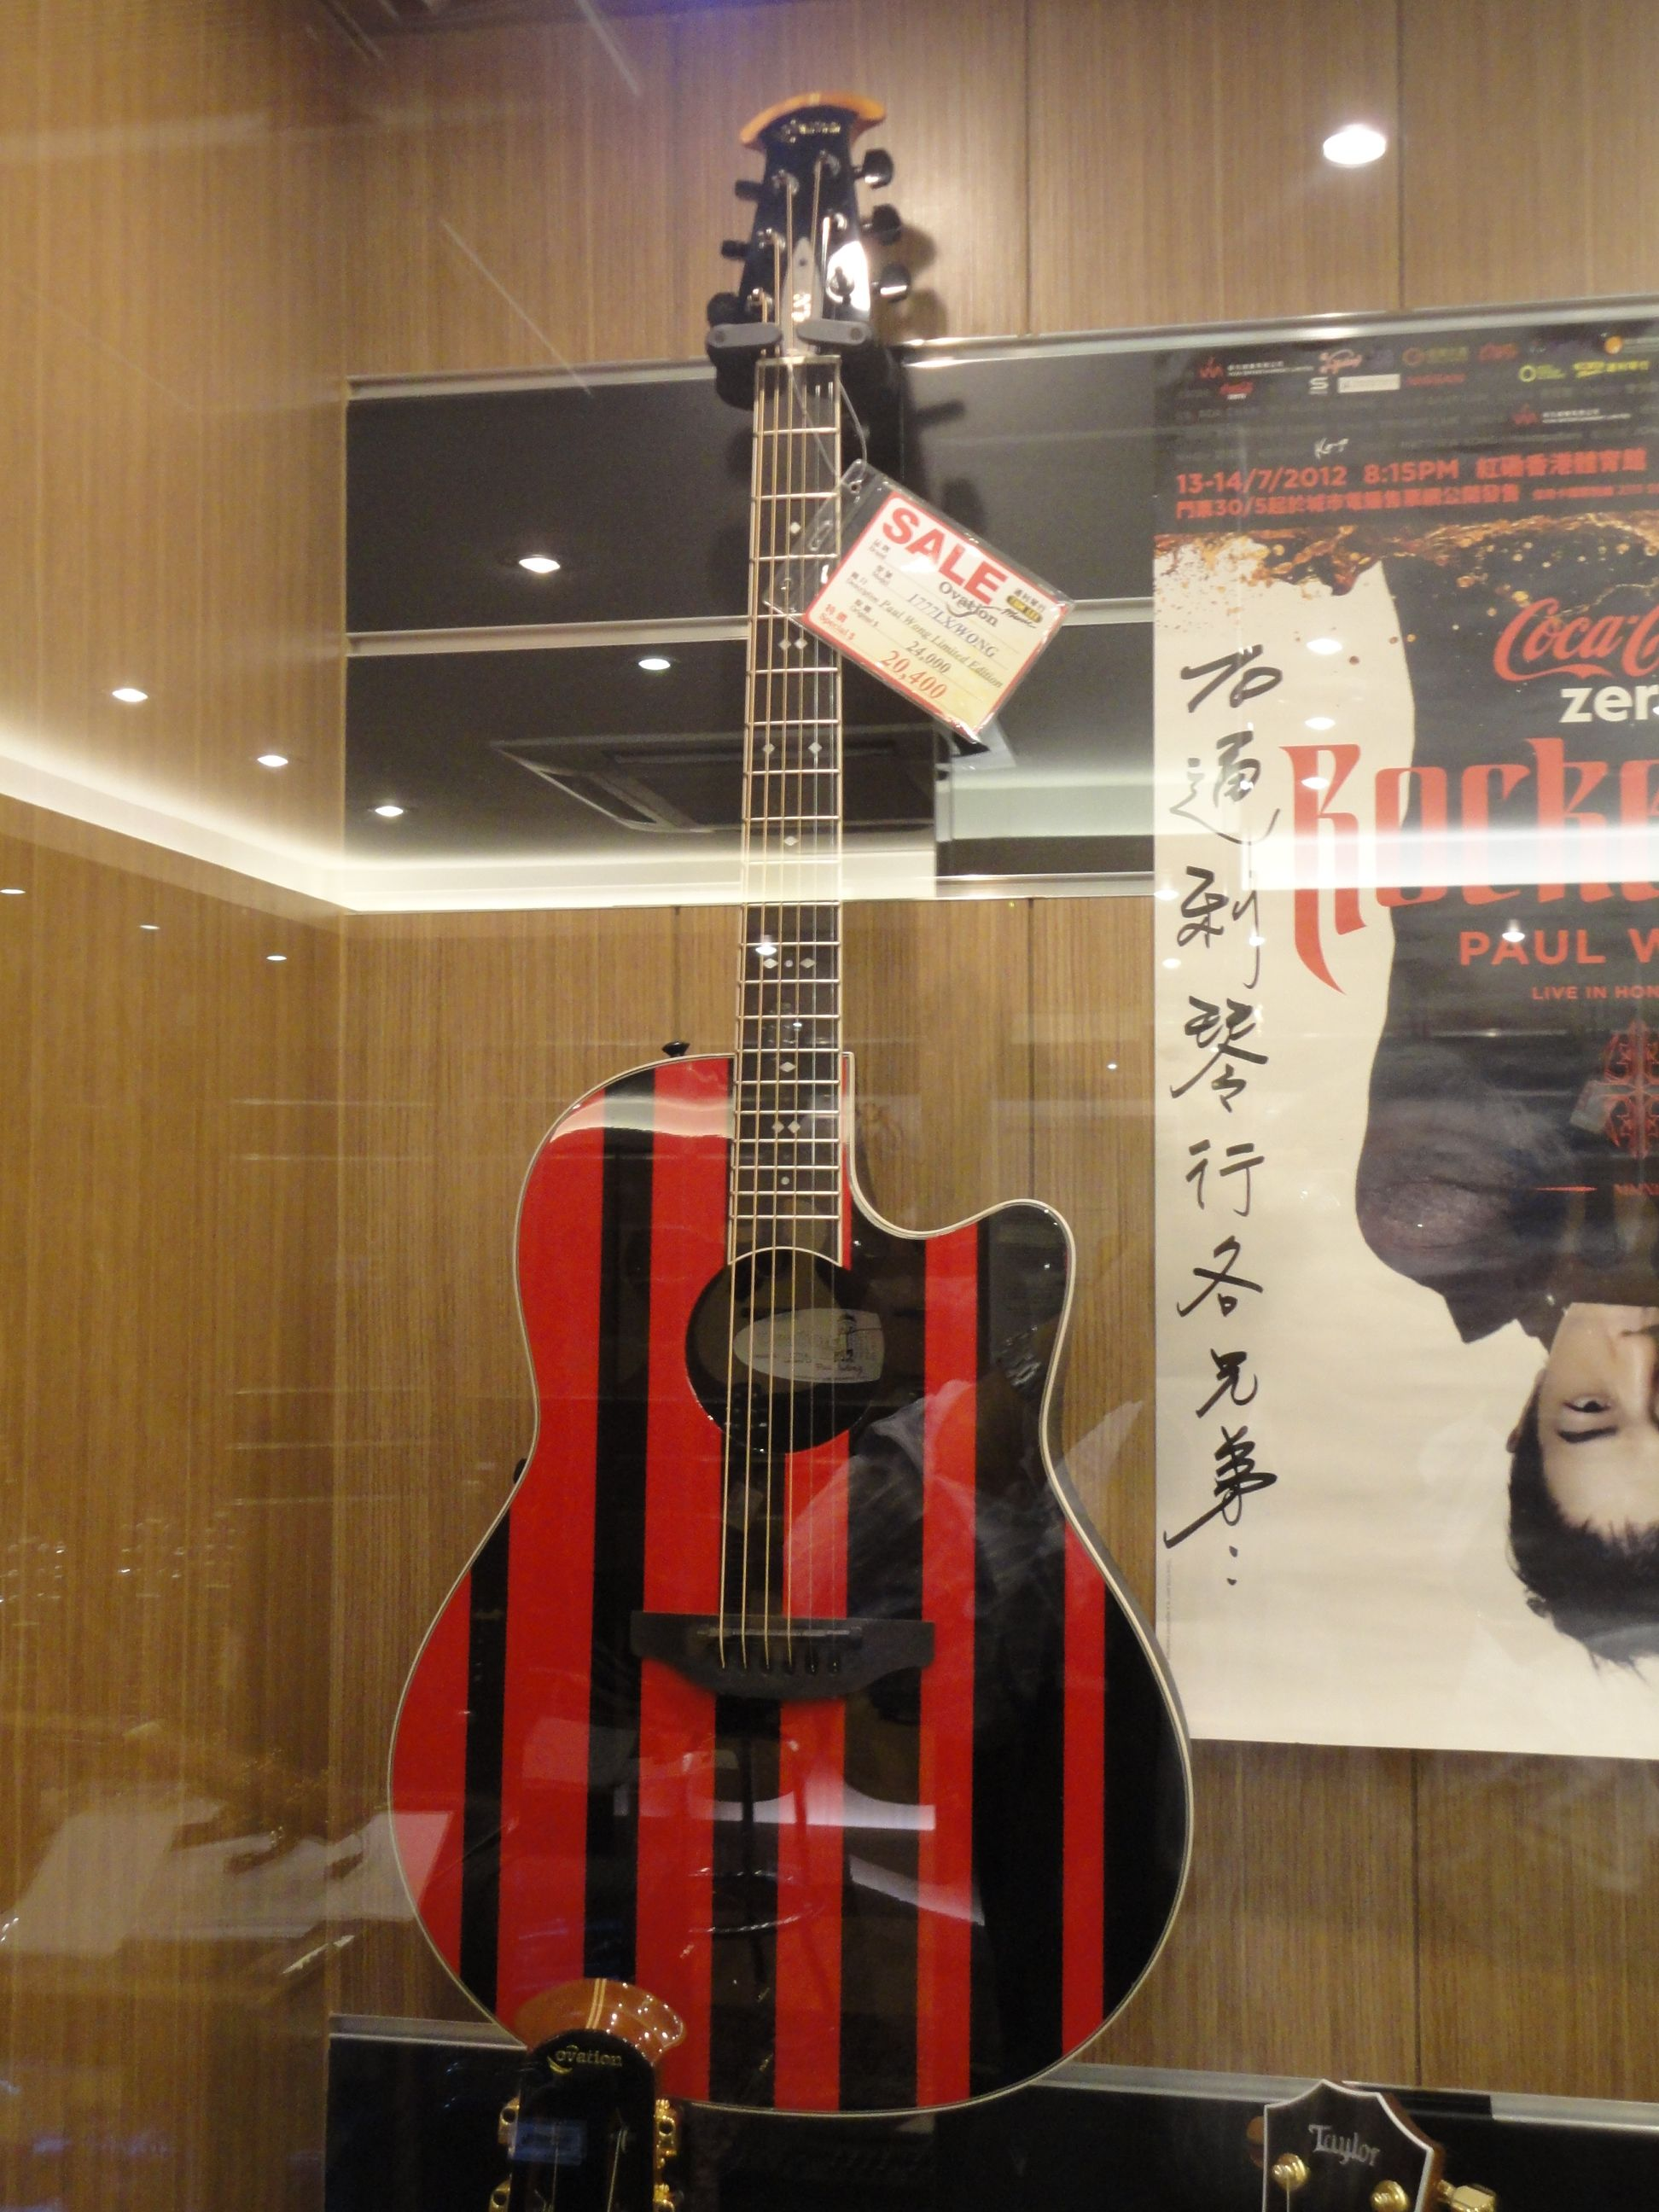 guitar store in hong kong | guitar and other music istrument